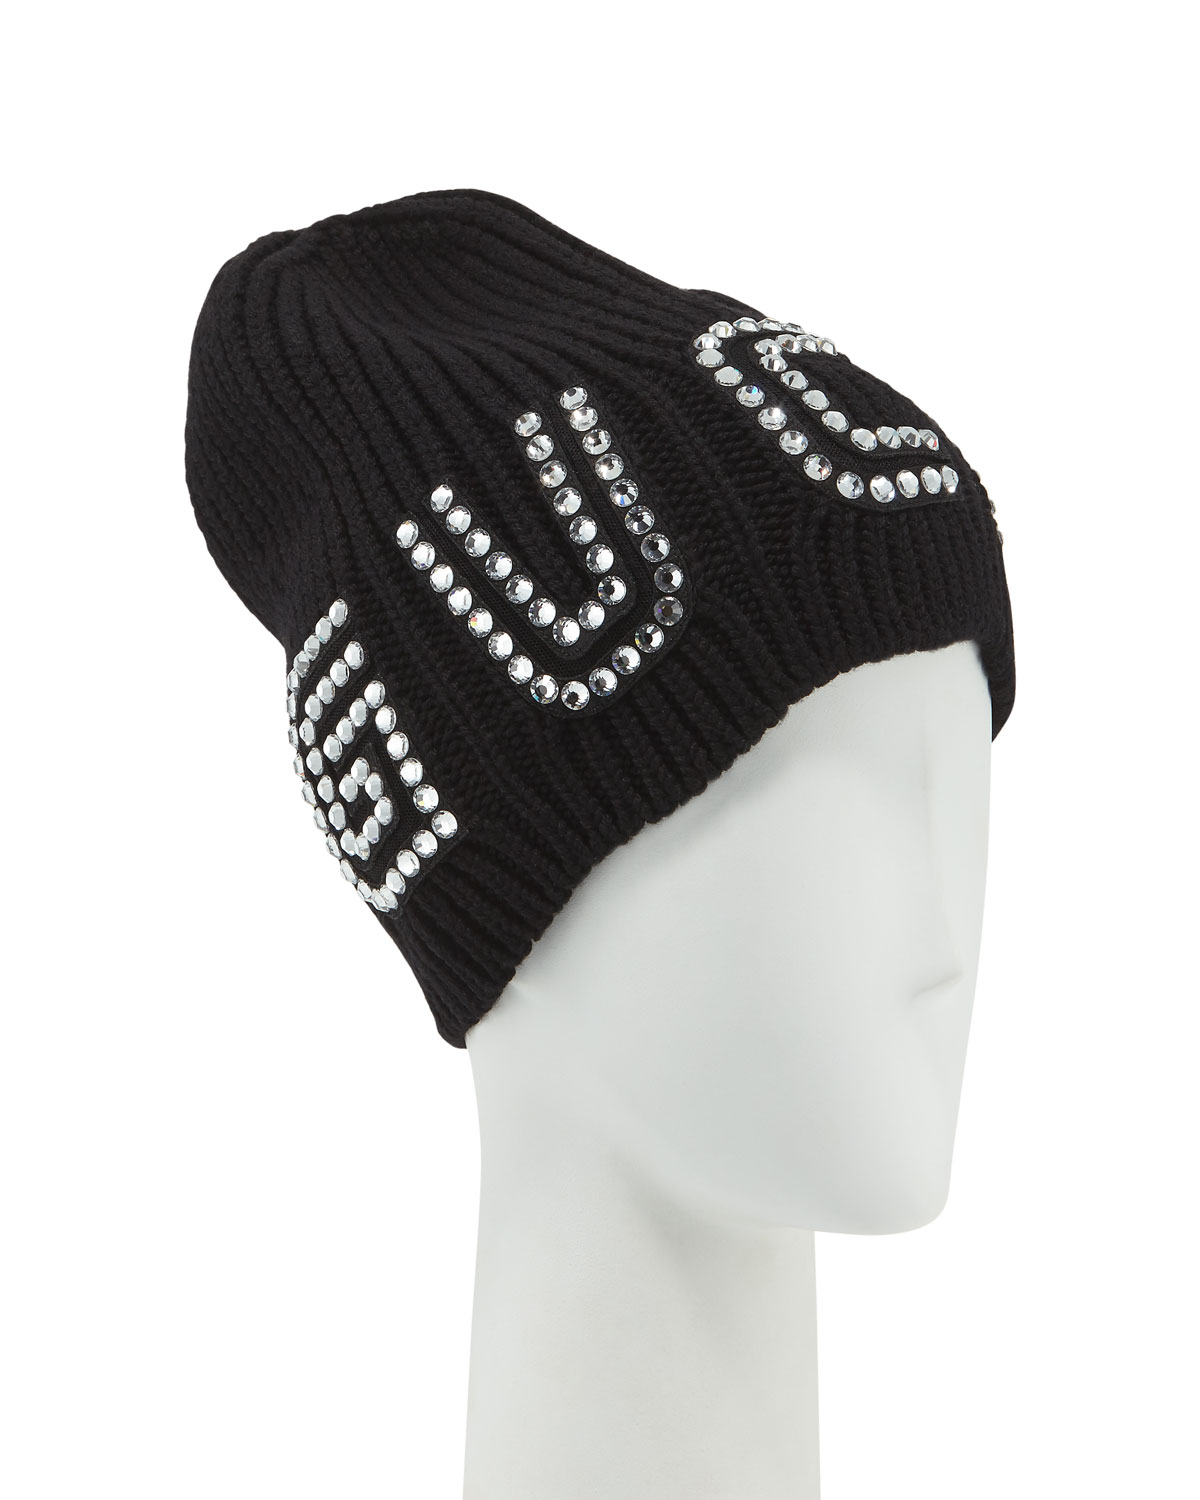 99ebe1d4a57 Gucci Game Guccy Rib-Knit Wool Beanie Hat